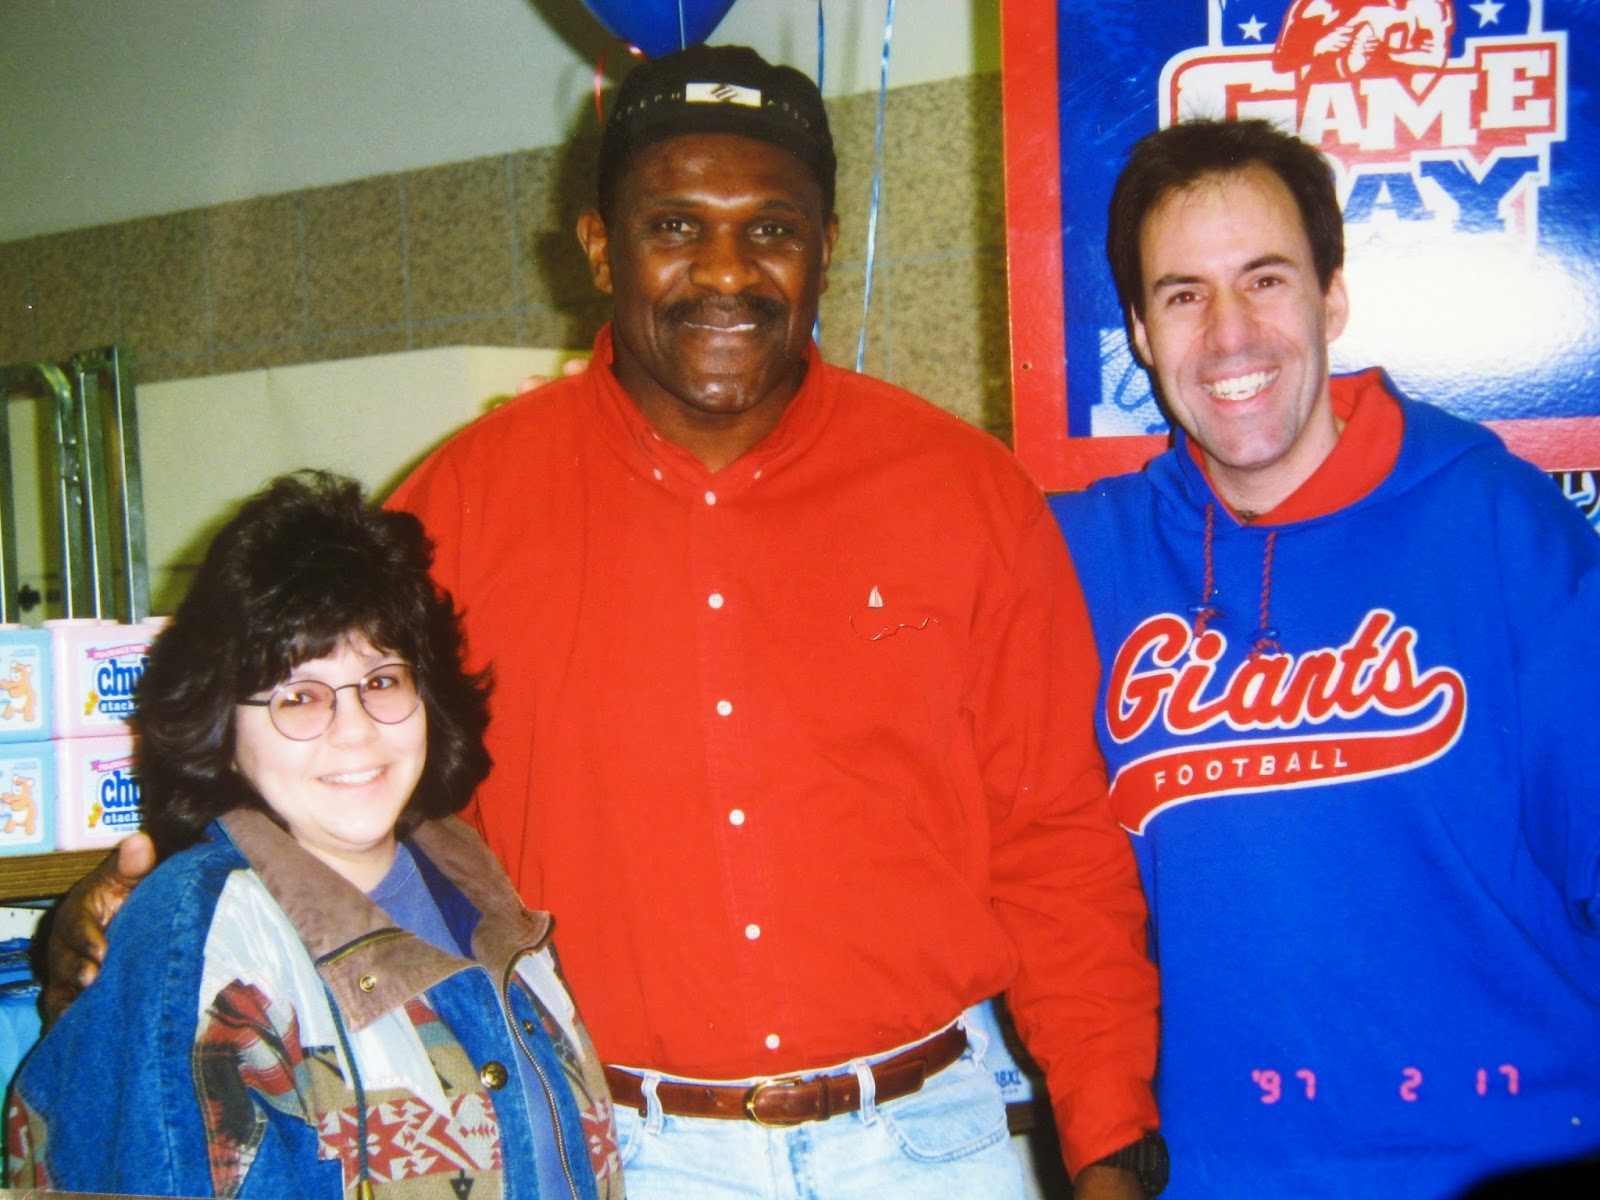 Tommy & Lynn with Harry Carson. Harry's hand is almost as big as Lynn's head... he was huge! Awesome!